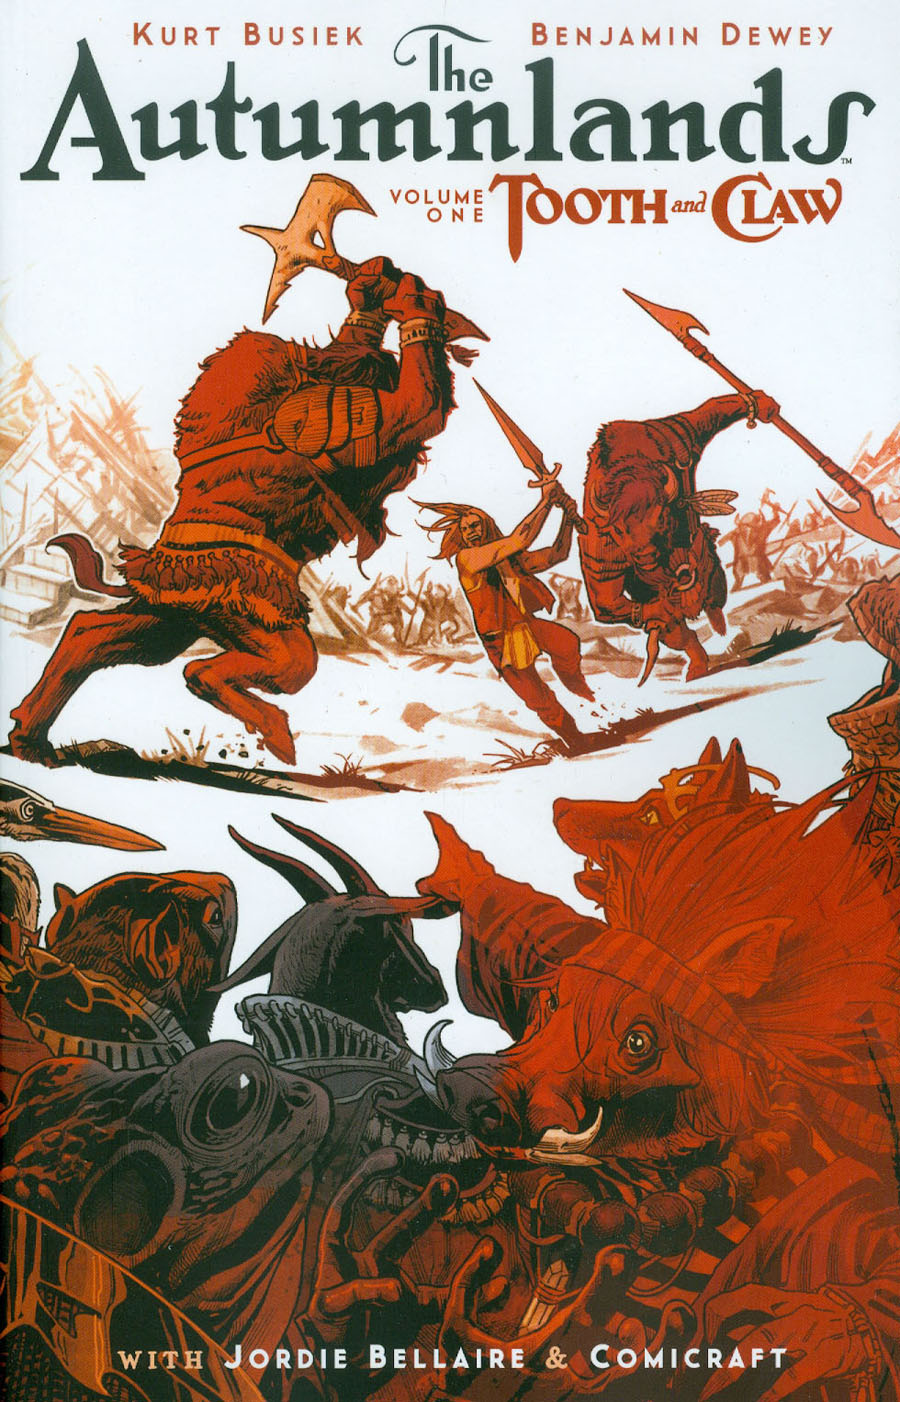 Autumnlands Vol 1 Tooth & Claw TP